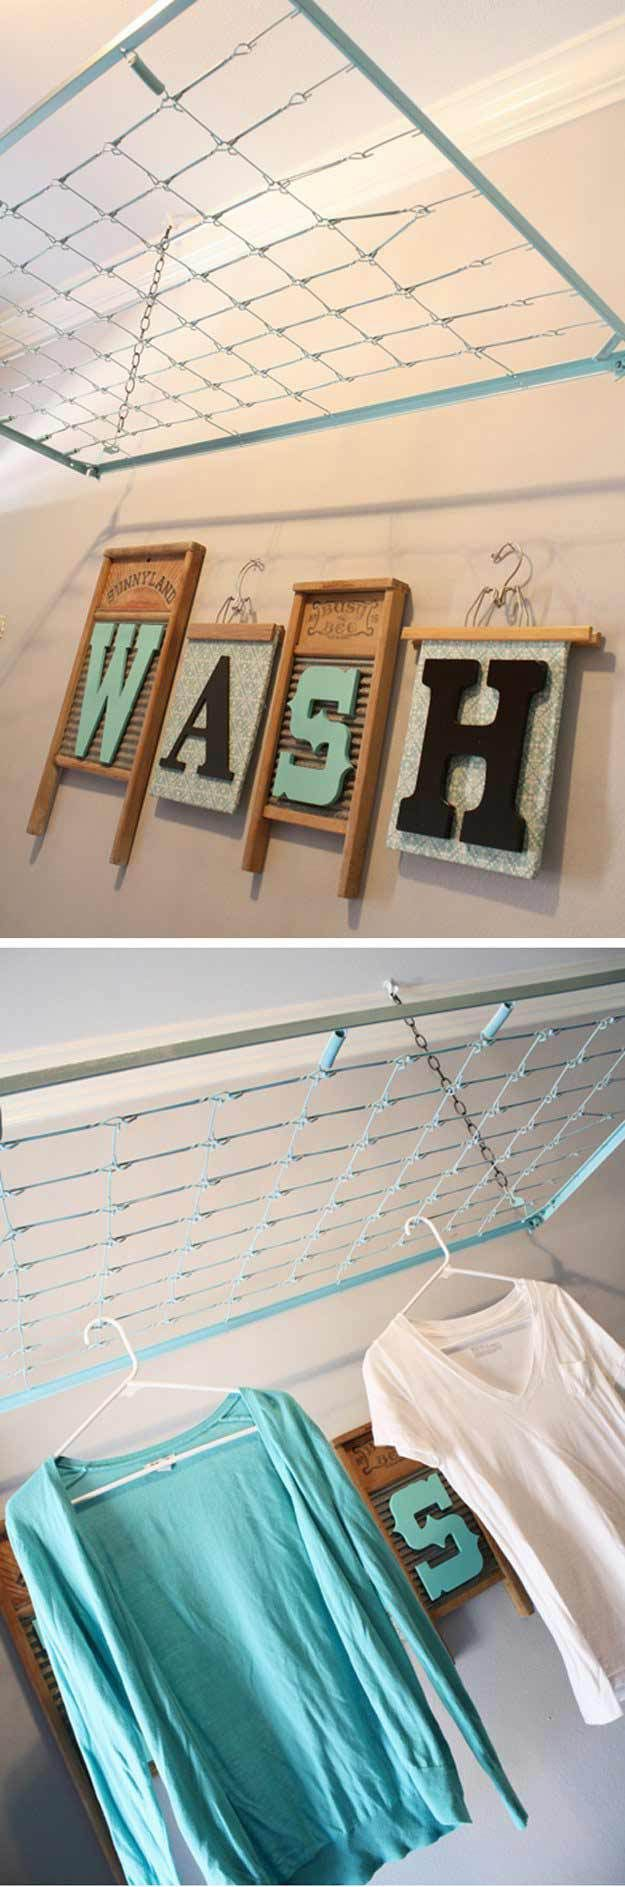 top 25+ best laundry rooms ideas on pinterest | laundry, small